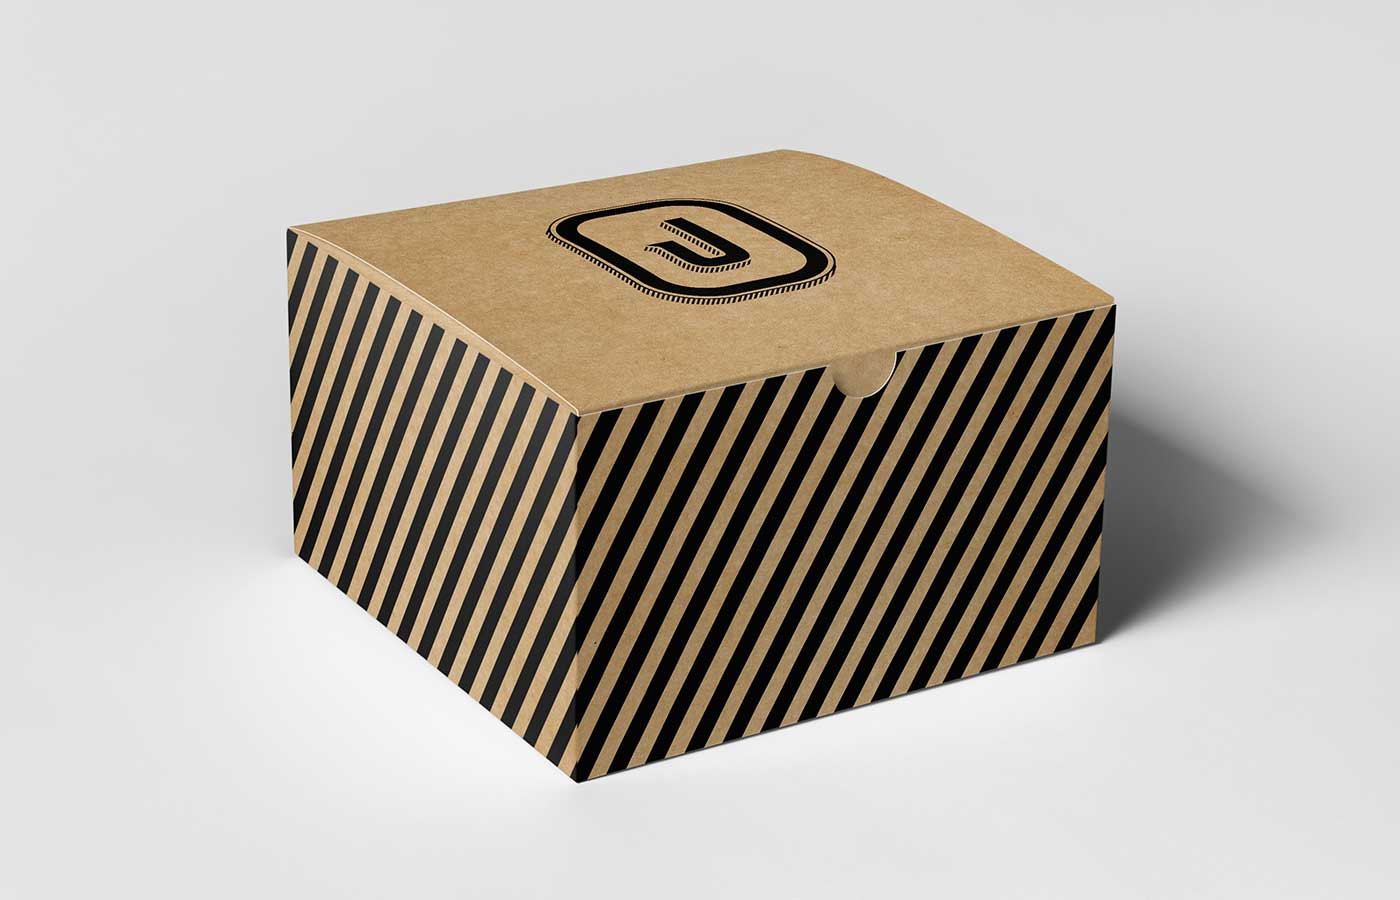 covetdesign_logo-design_branding_package-design_graphic-designer_vancouver_work_wide_jamjar-box